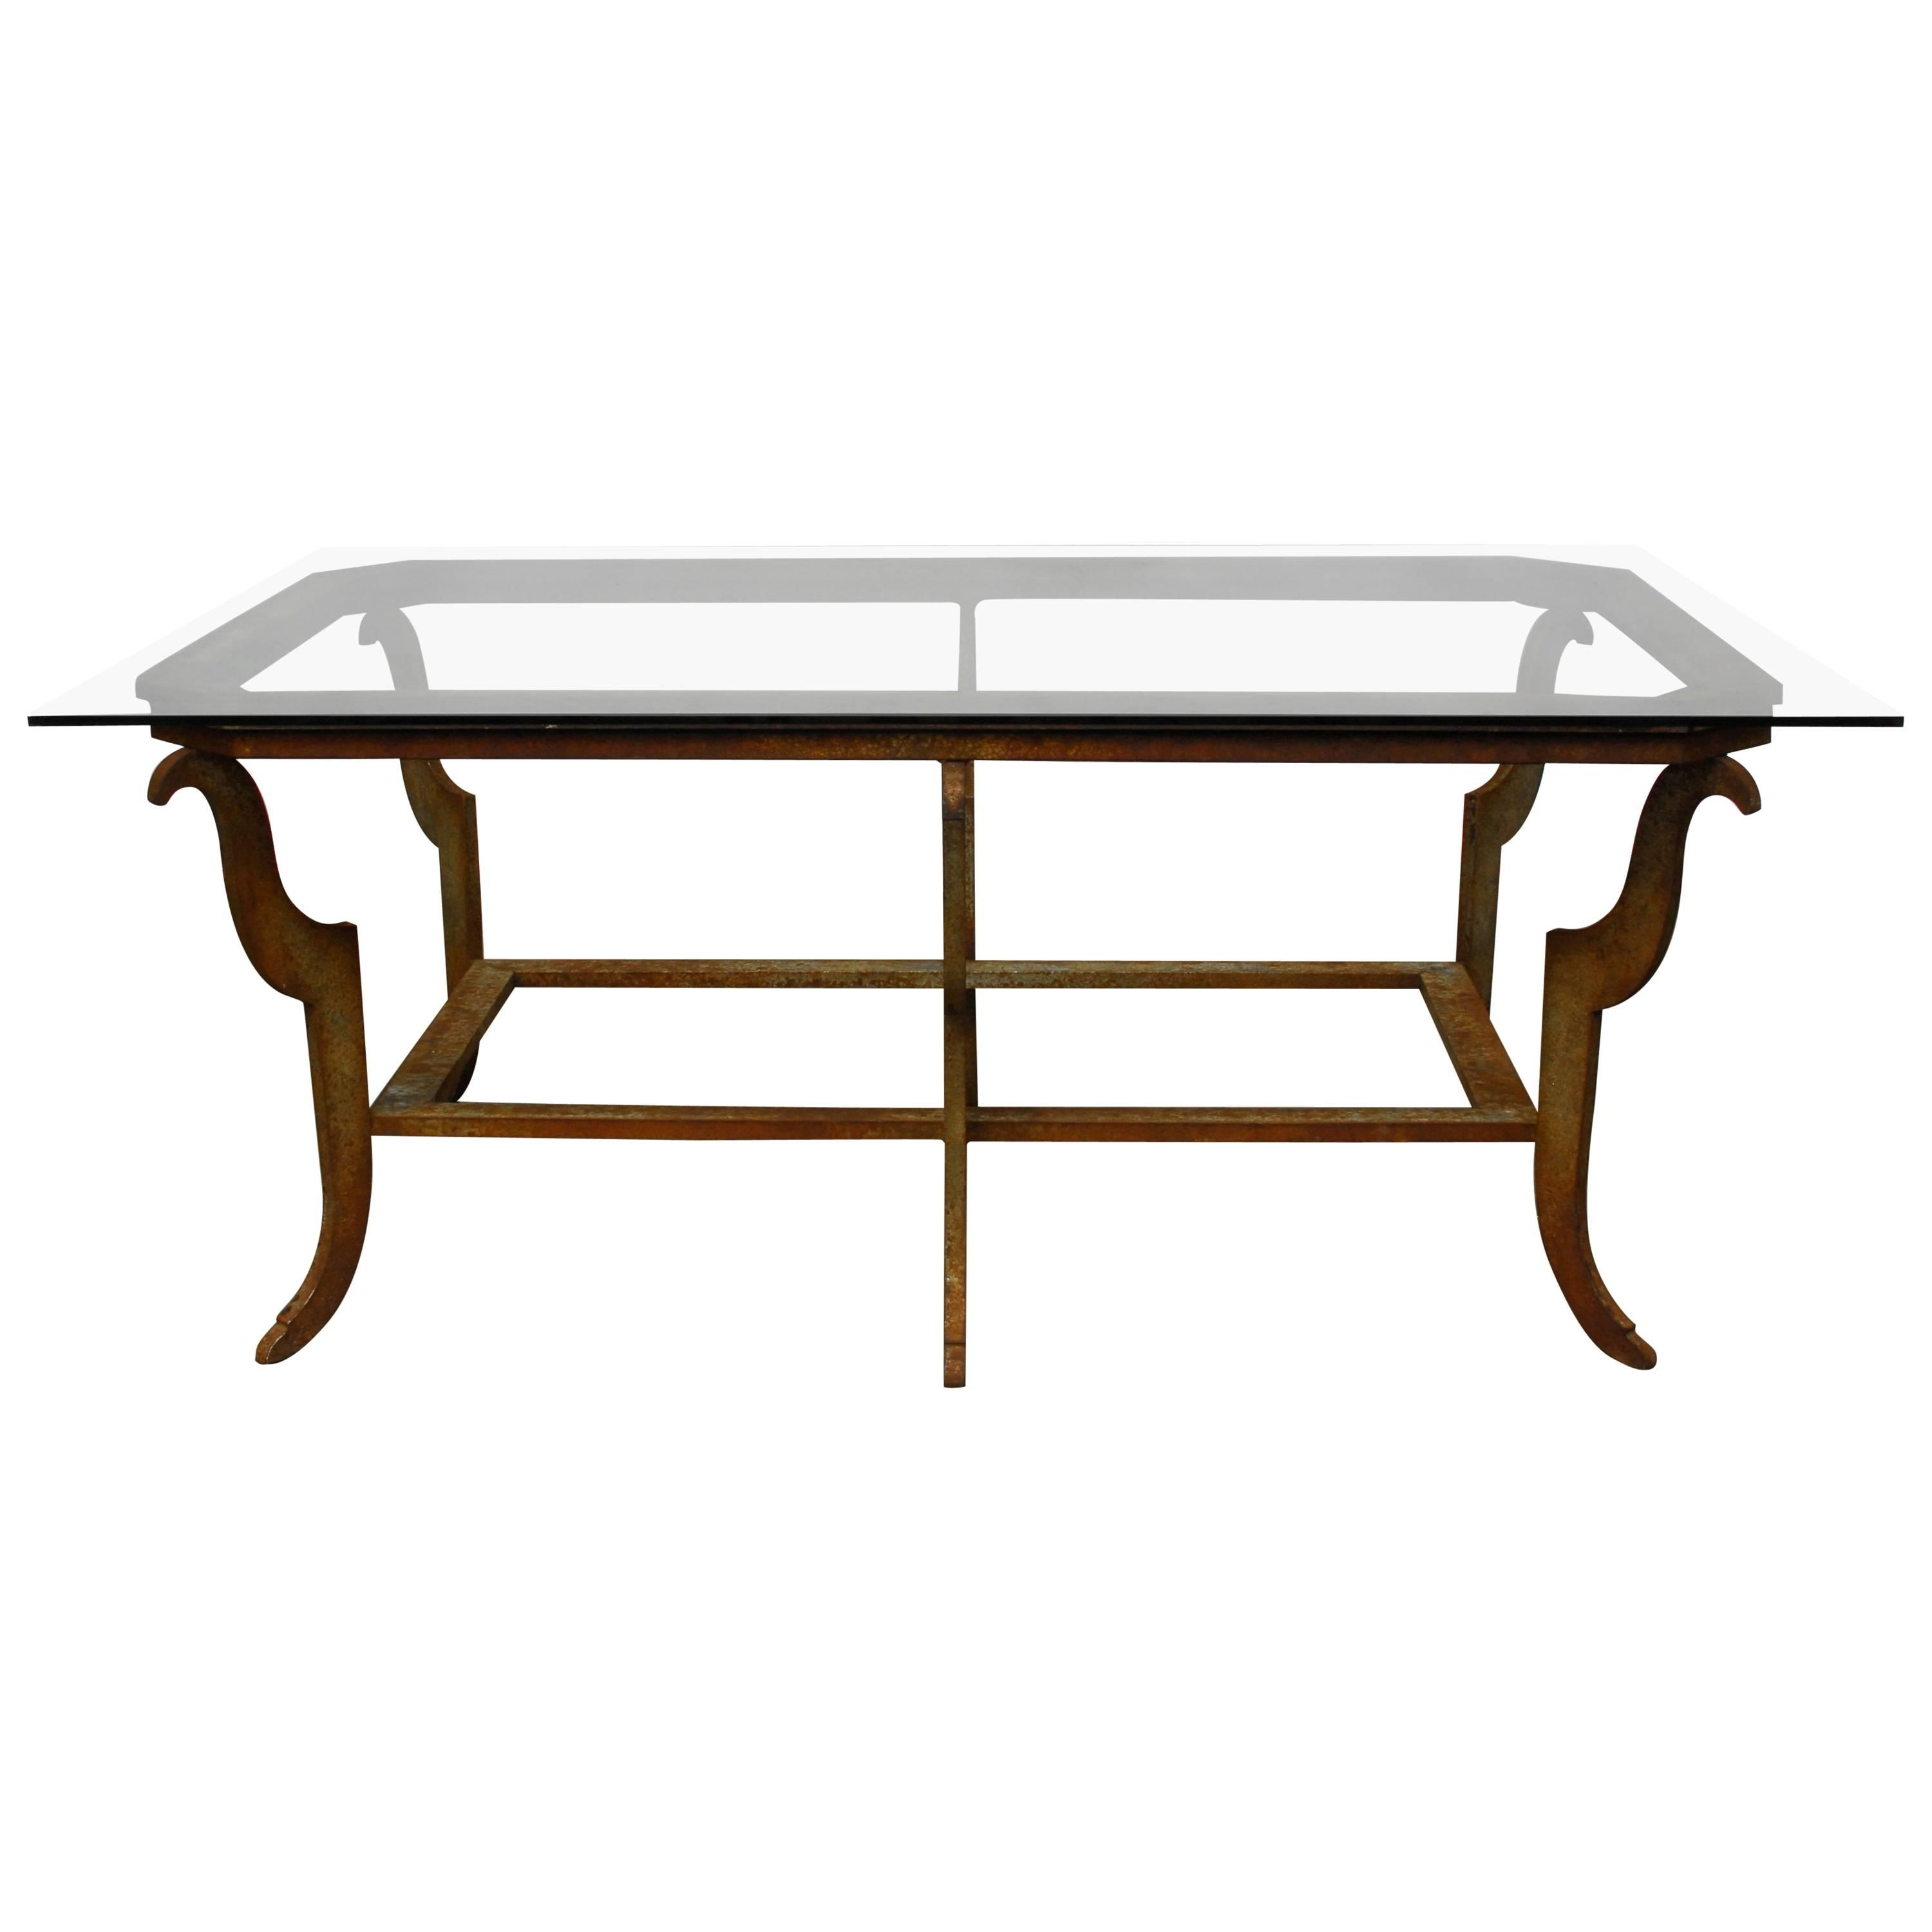 Sculpted Steel Patinated Coffee Table For Sale At 1stdibs Pertaining To Preferred Rectangular Barbox Coffee Tables (View 6 of 20)